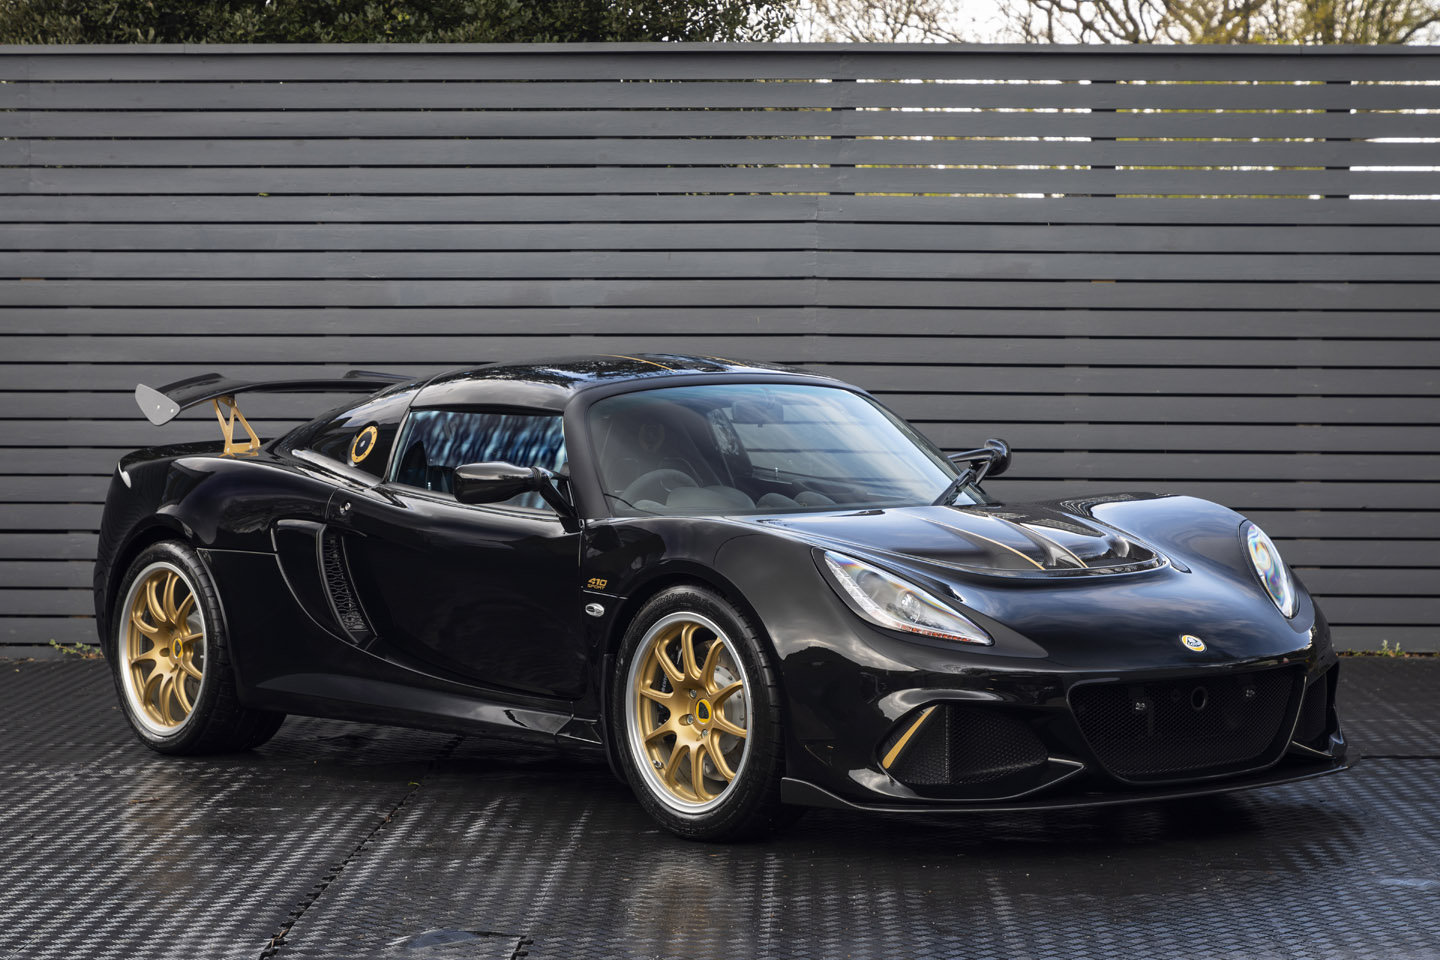 2019 LOTUS EXIGE SPORT 410 COUPE - NEW For Sale (picture 1 of 6)